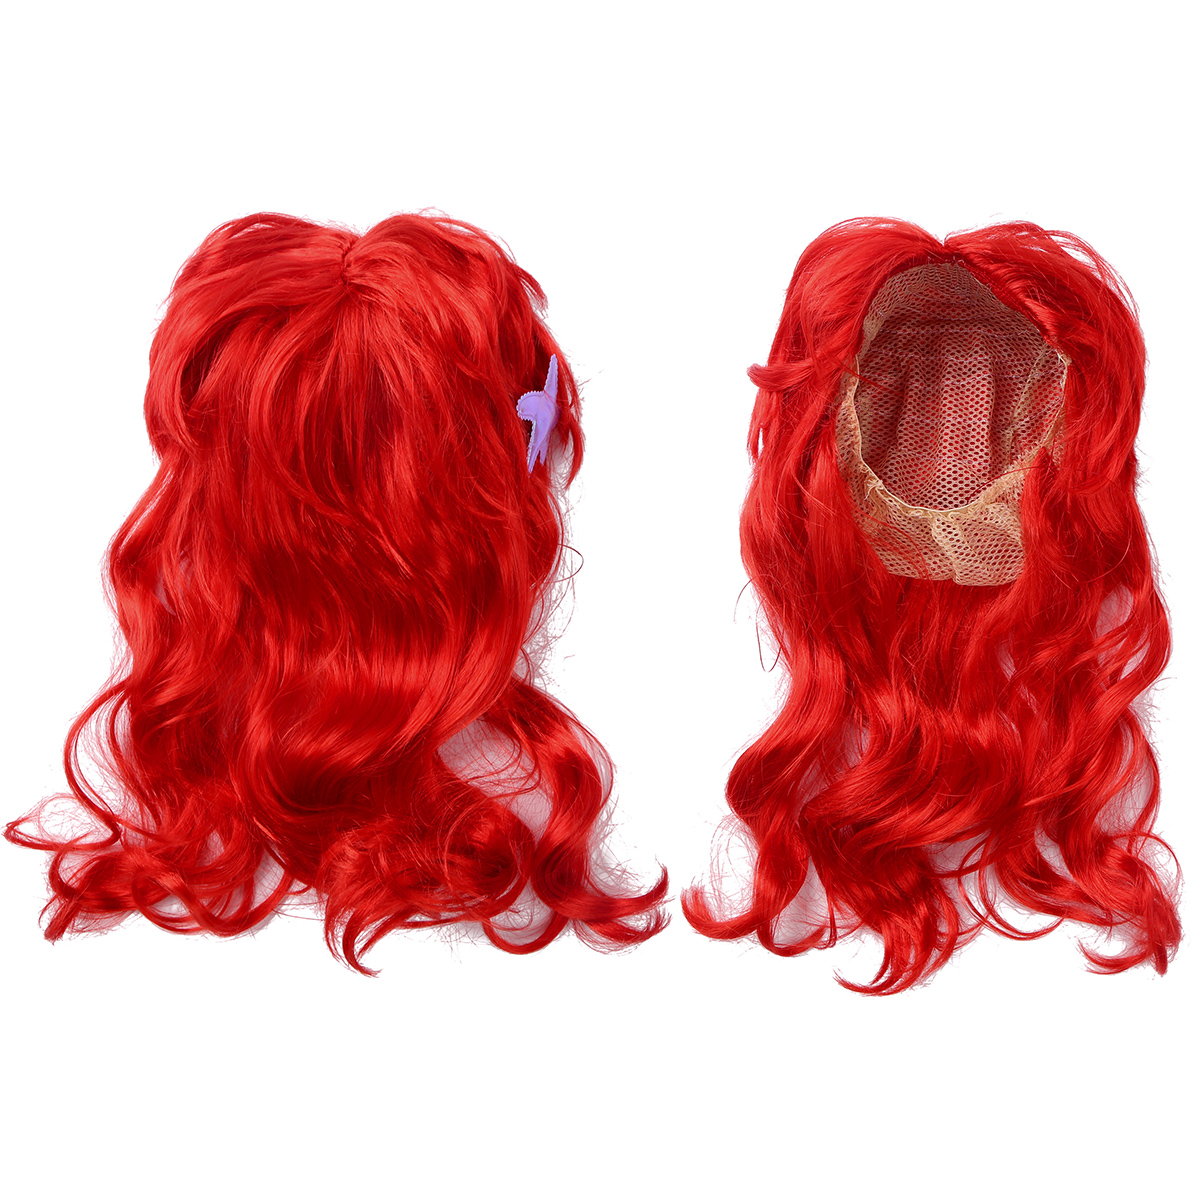 Kids Girls Princess Dress up Red Wigs Hair with Starfish Hair Clip Headwear Halloween Anime Cosplay Costume Mermaid Accessories